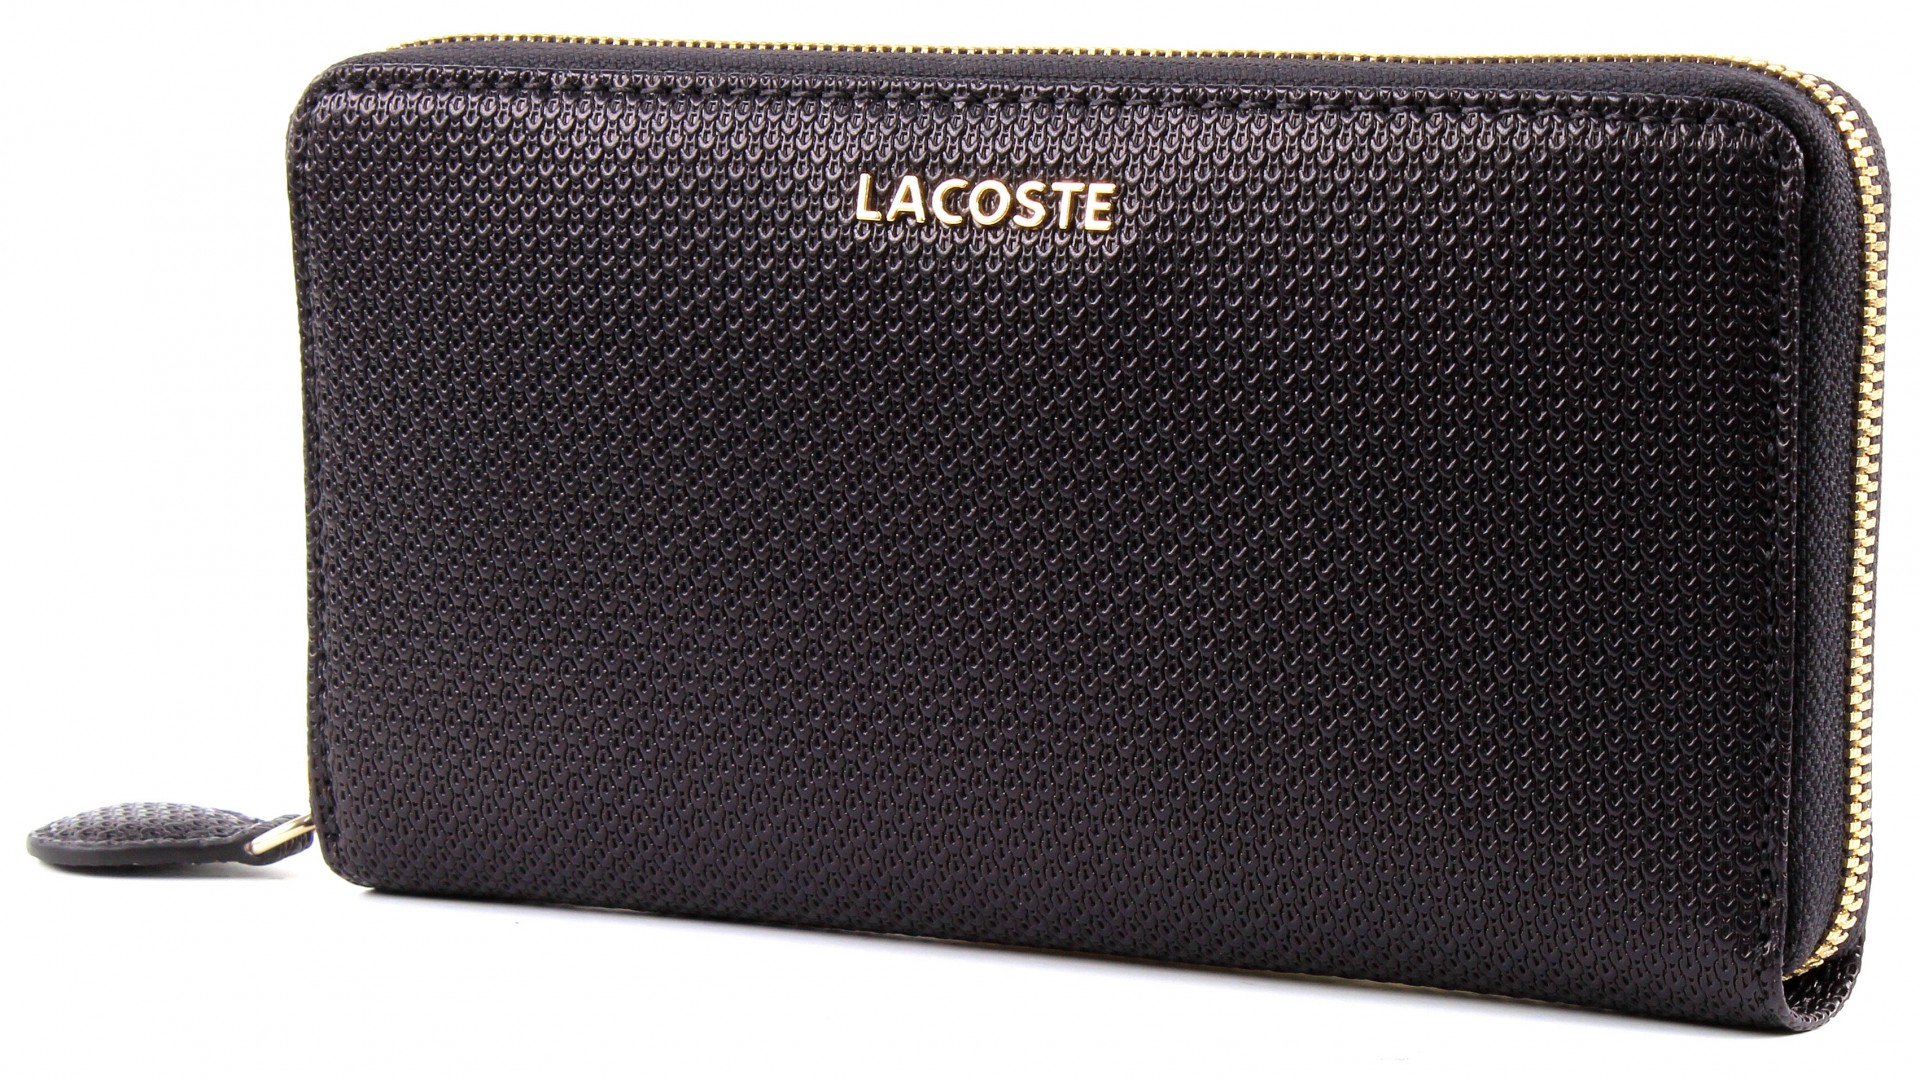 lacoste institutionnelle large zip wallet geldb rse portemonnaie damen braun ebay. Black Bedroom Furniture Sets. Home Design Ideas